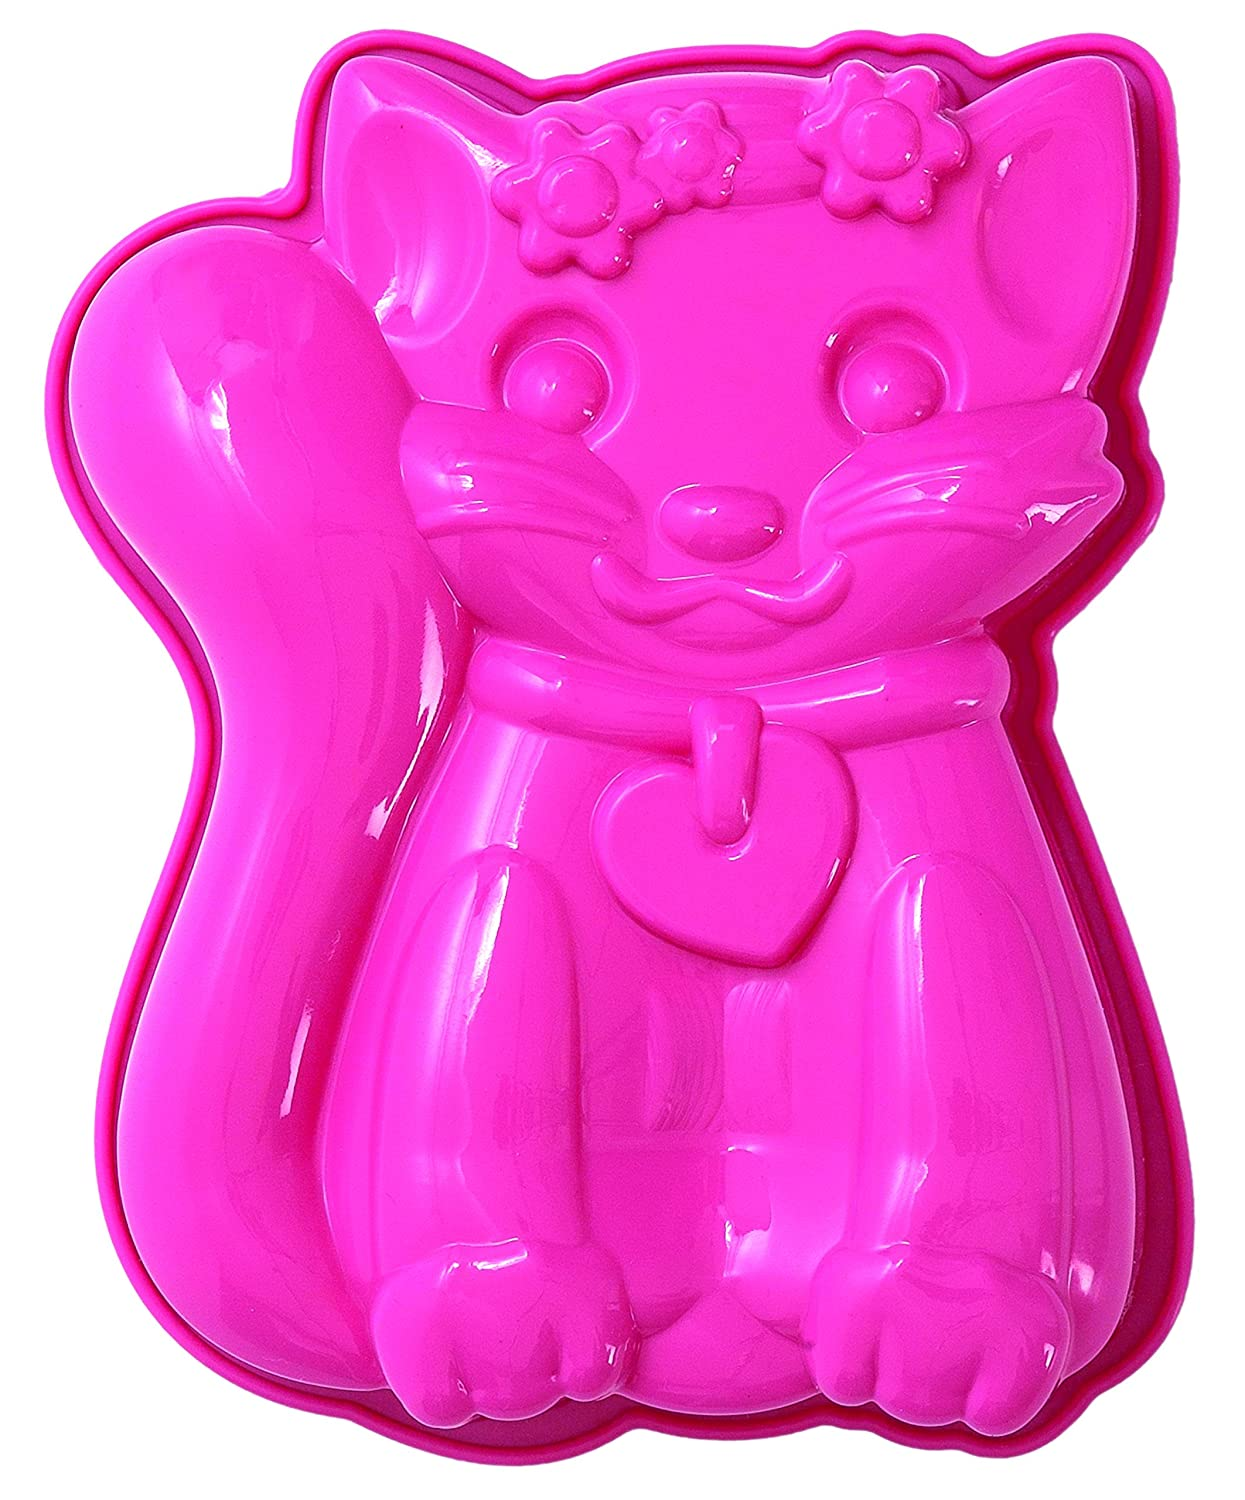 Pavoni FRT174 Platinum Silicone Sophia-Cat Mini Cake Mould, Pink